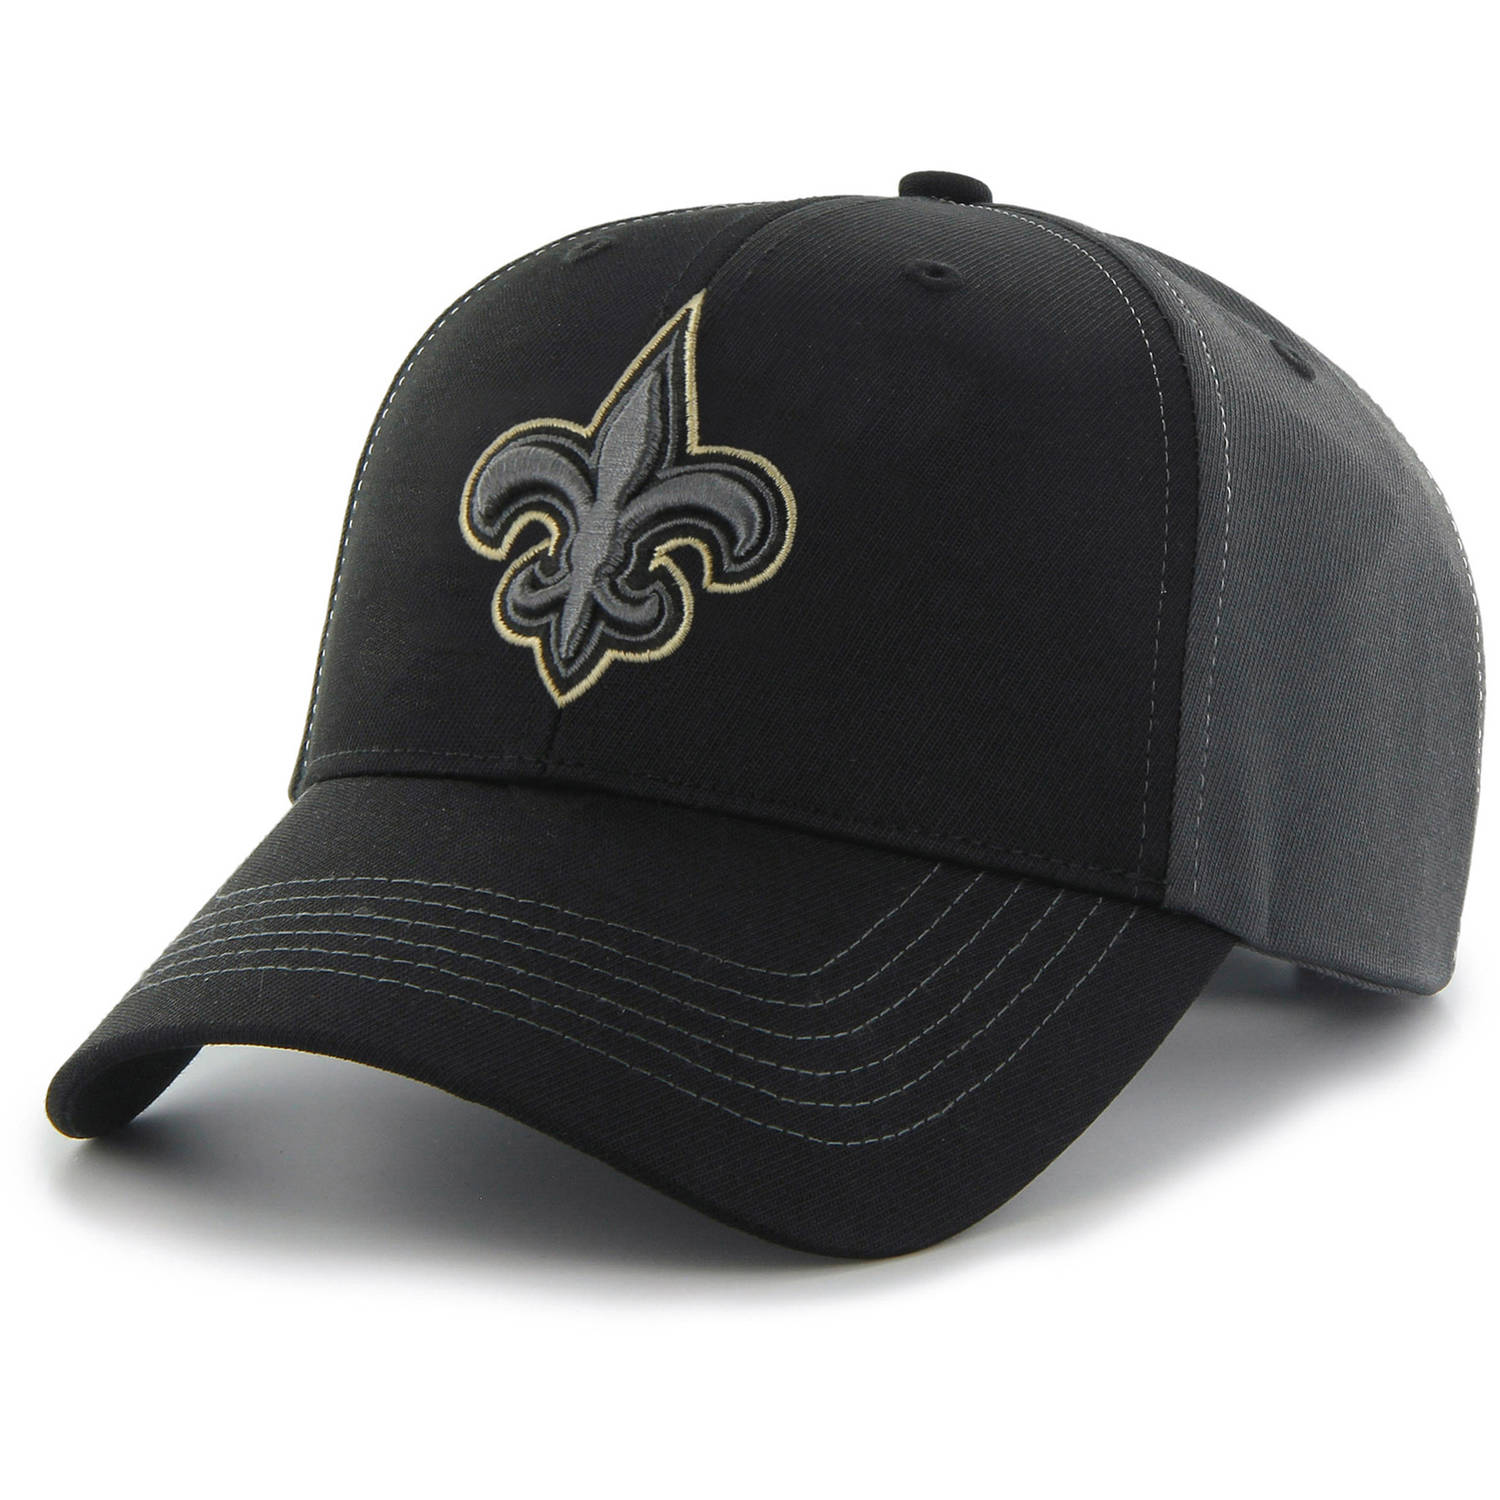 NFL New Orleans Saints Mass Blackball Cap - Fan Favorite